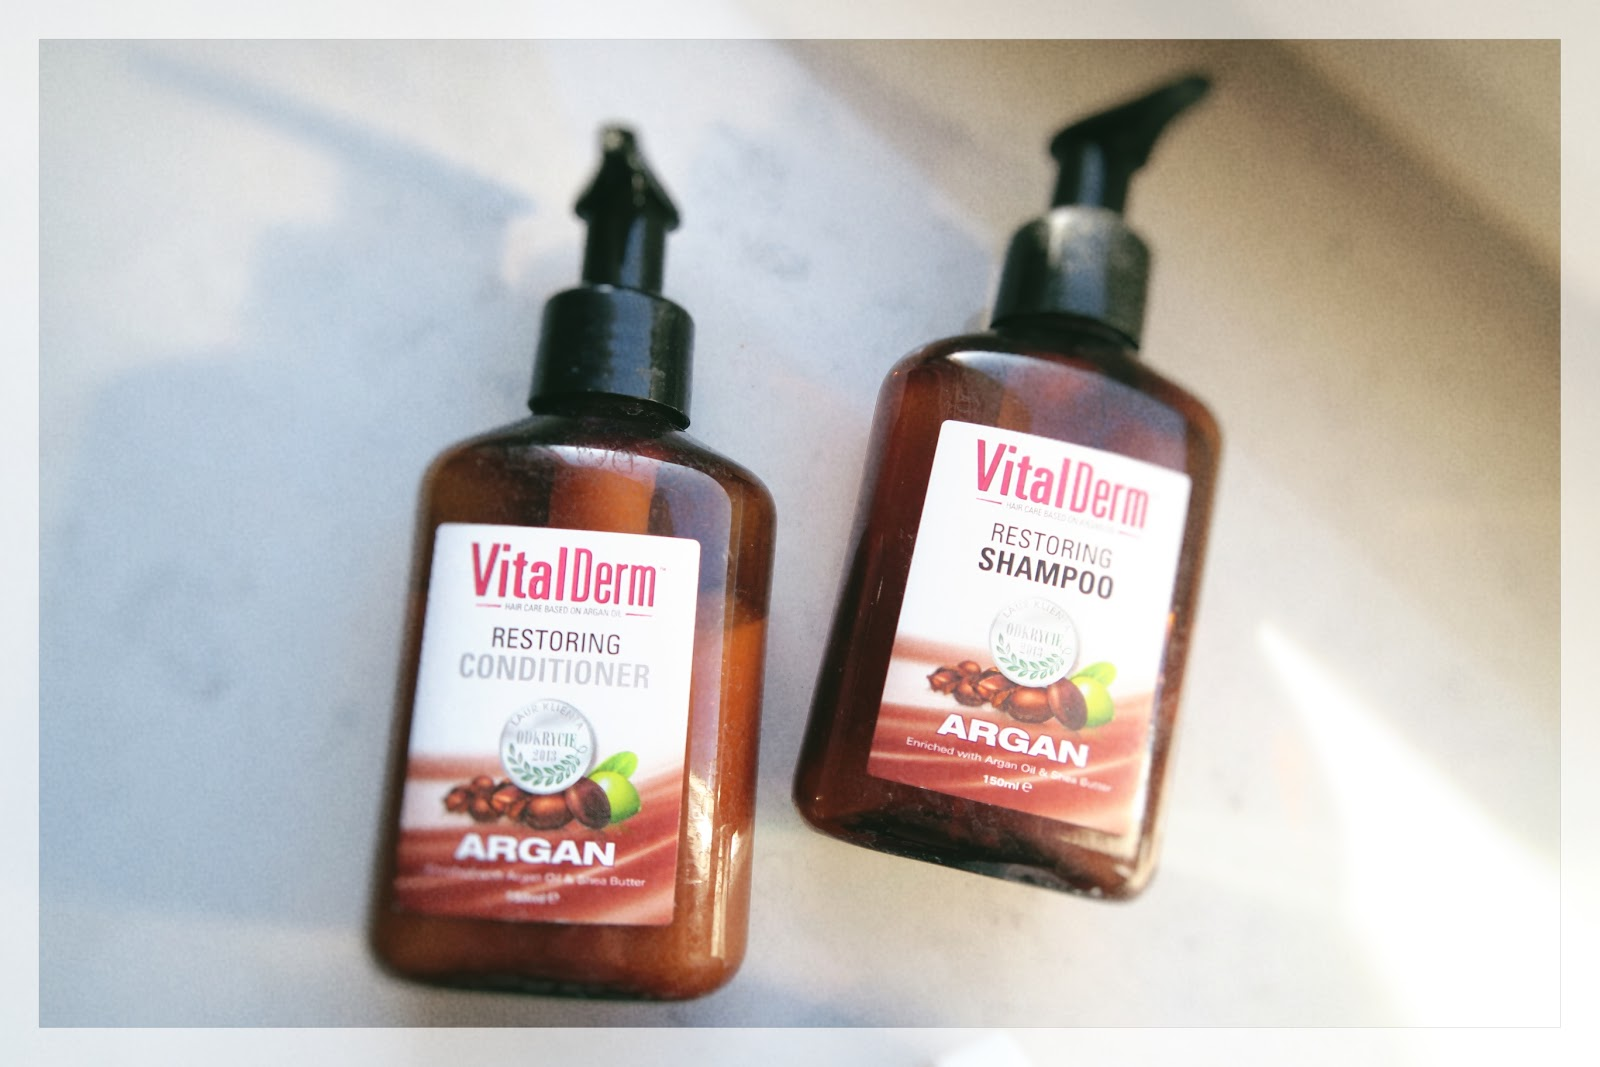 Vital Derm Restoting Shampoo Conditioner Argan